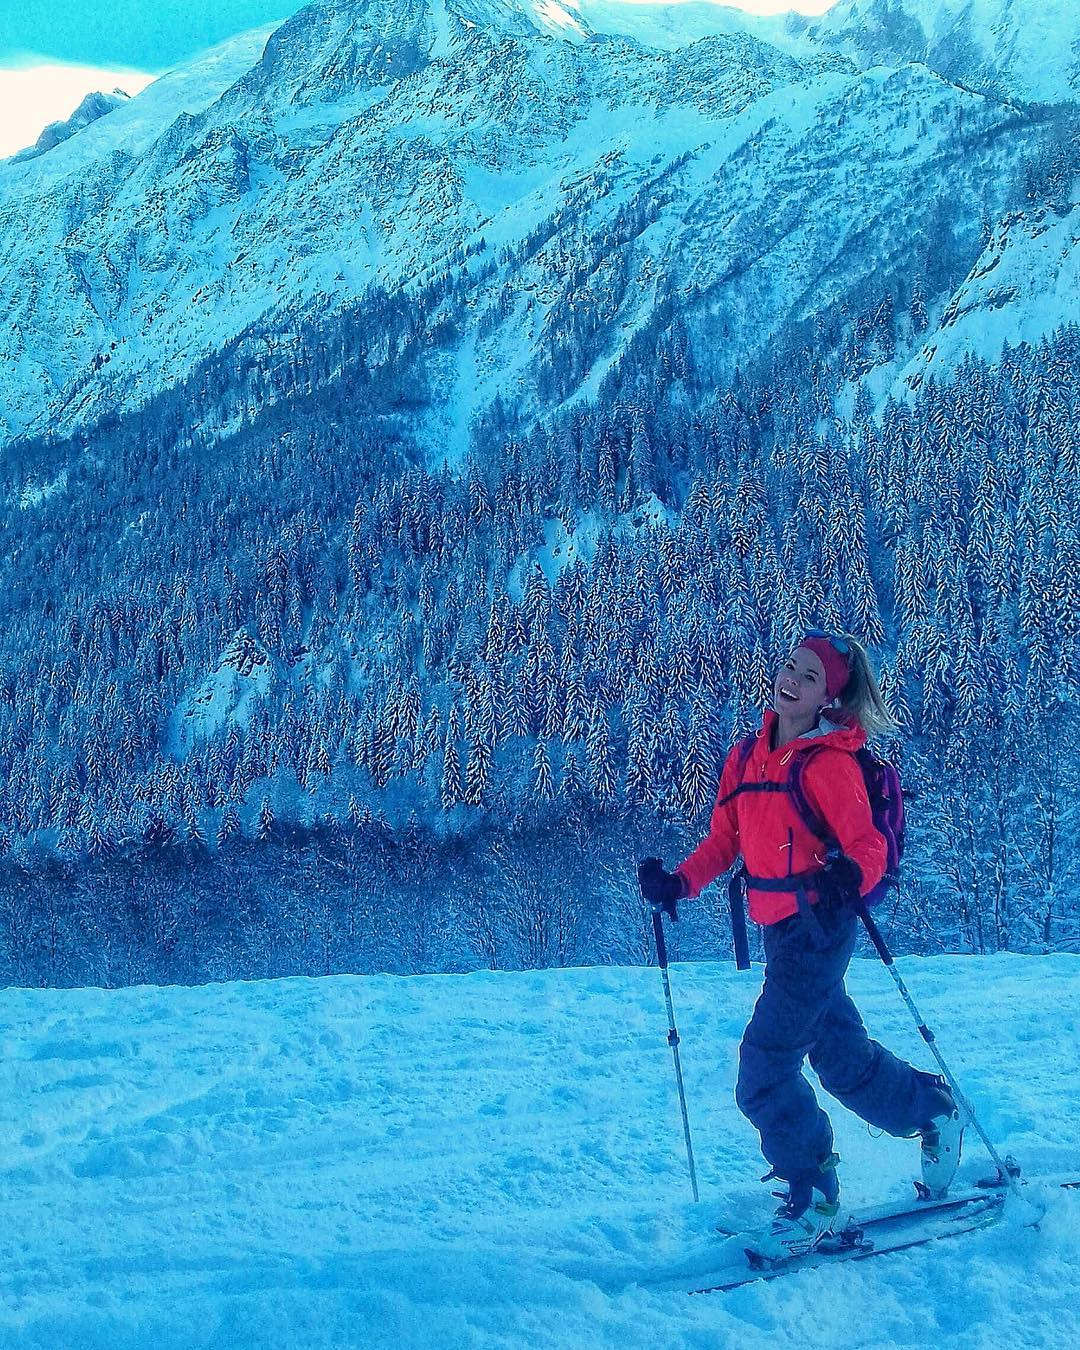 Ski tour with the awesome mountain girl Irne Mnguía